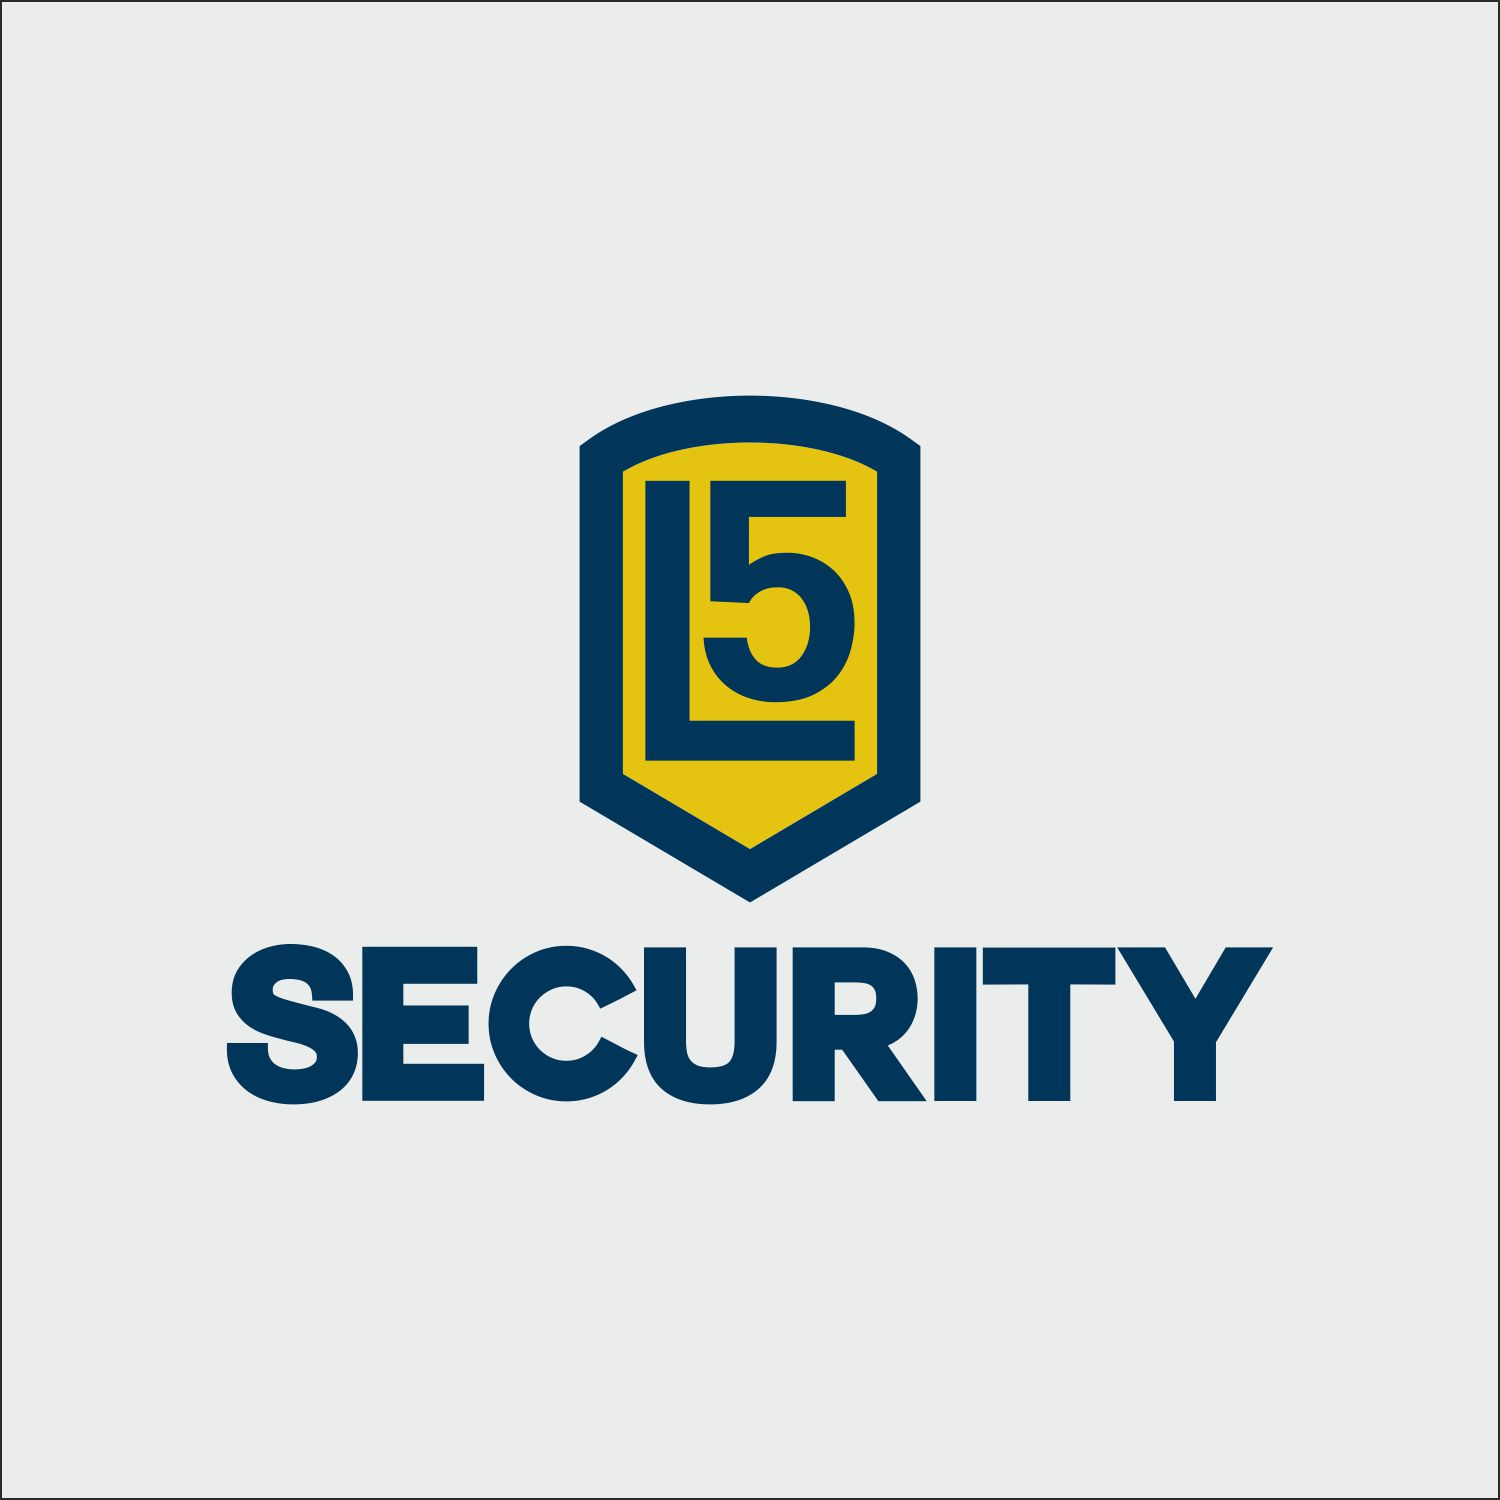 professional serious it company logo design for l5 security by art rh designcrowd com security company logo design security company logo psd